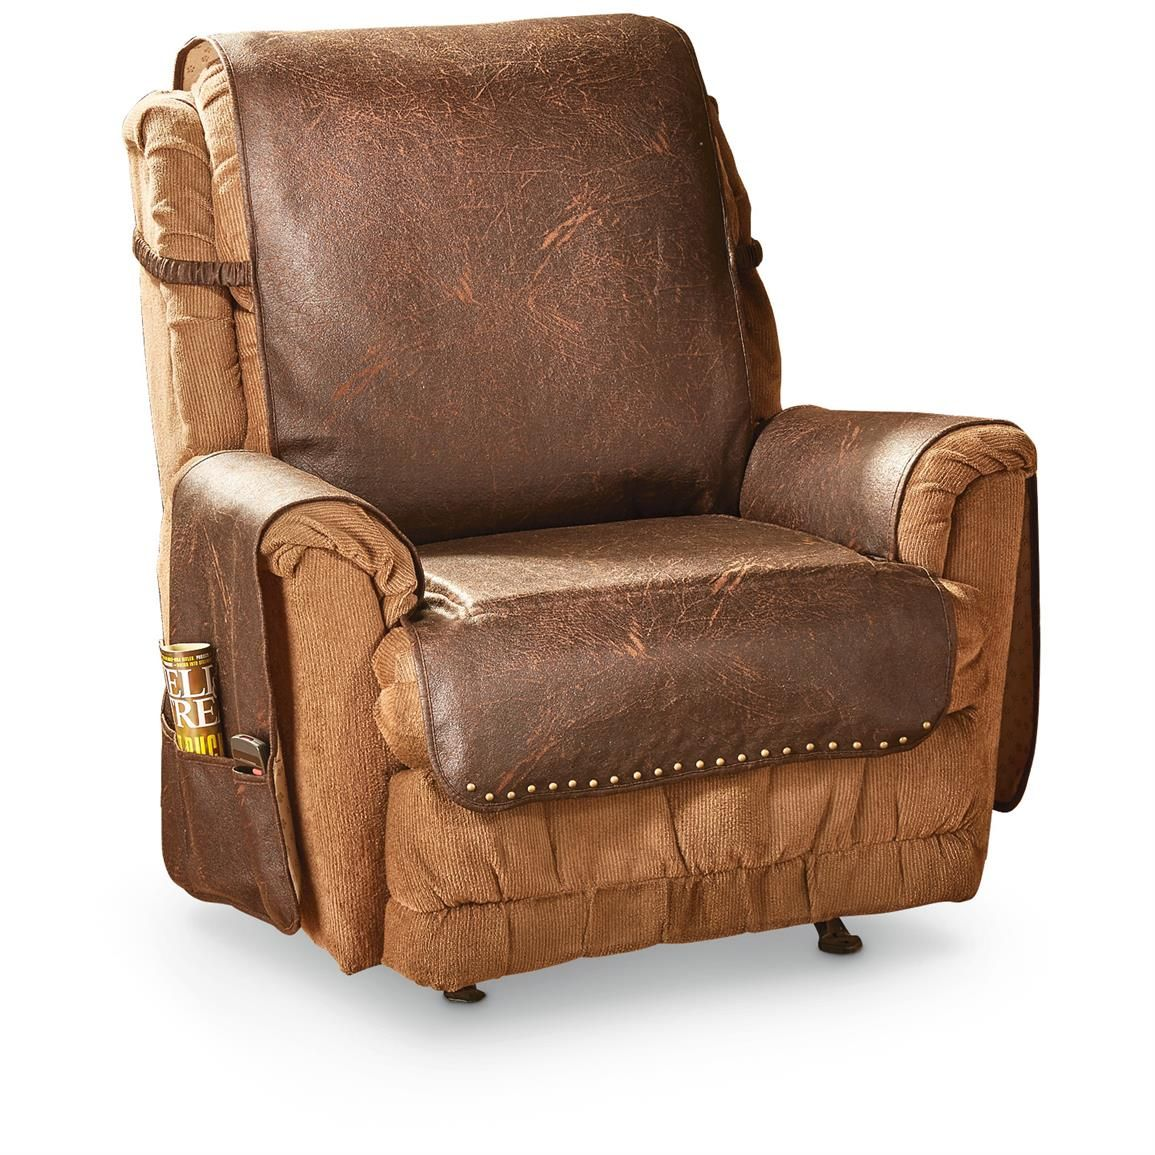 cognac leather sofa arm chair covers